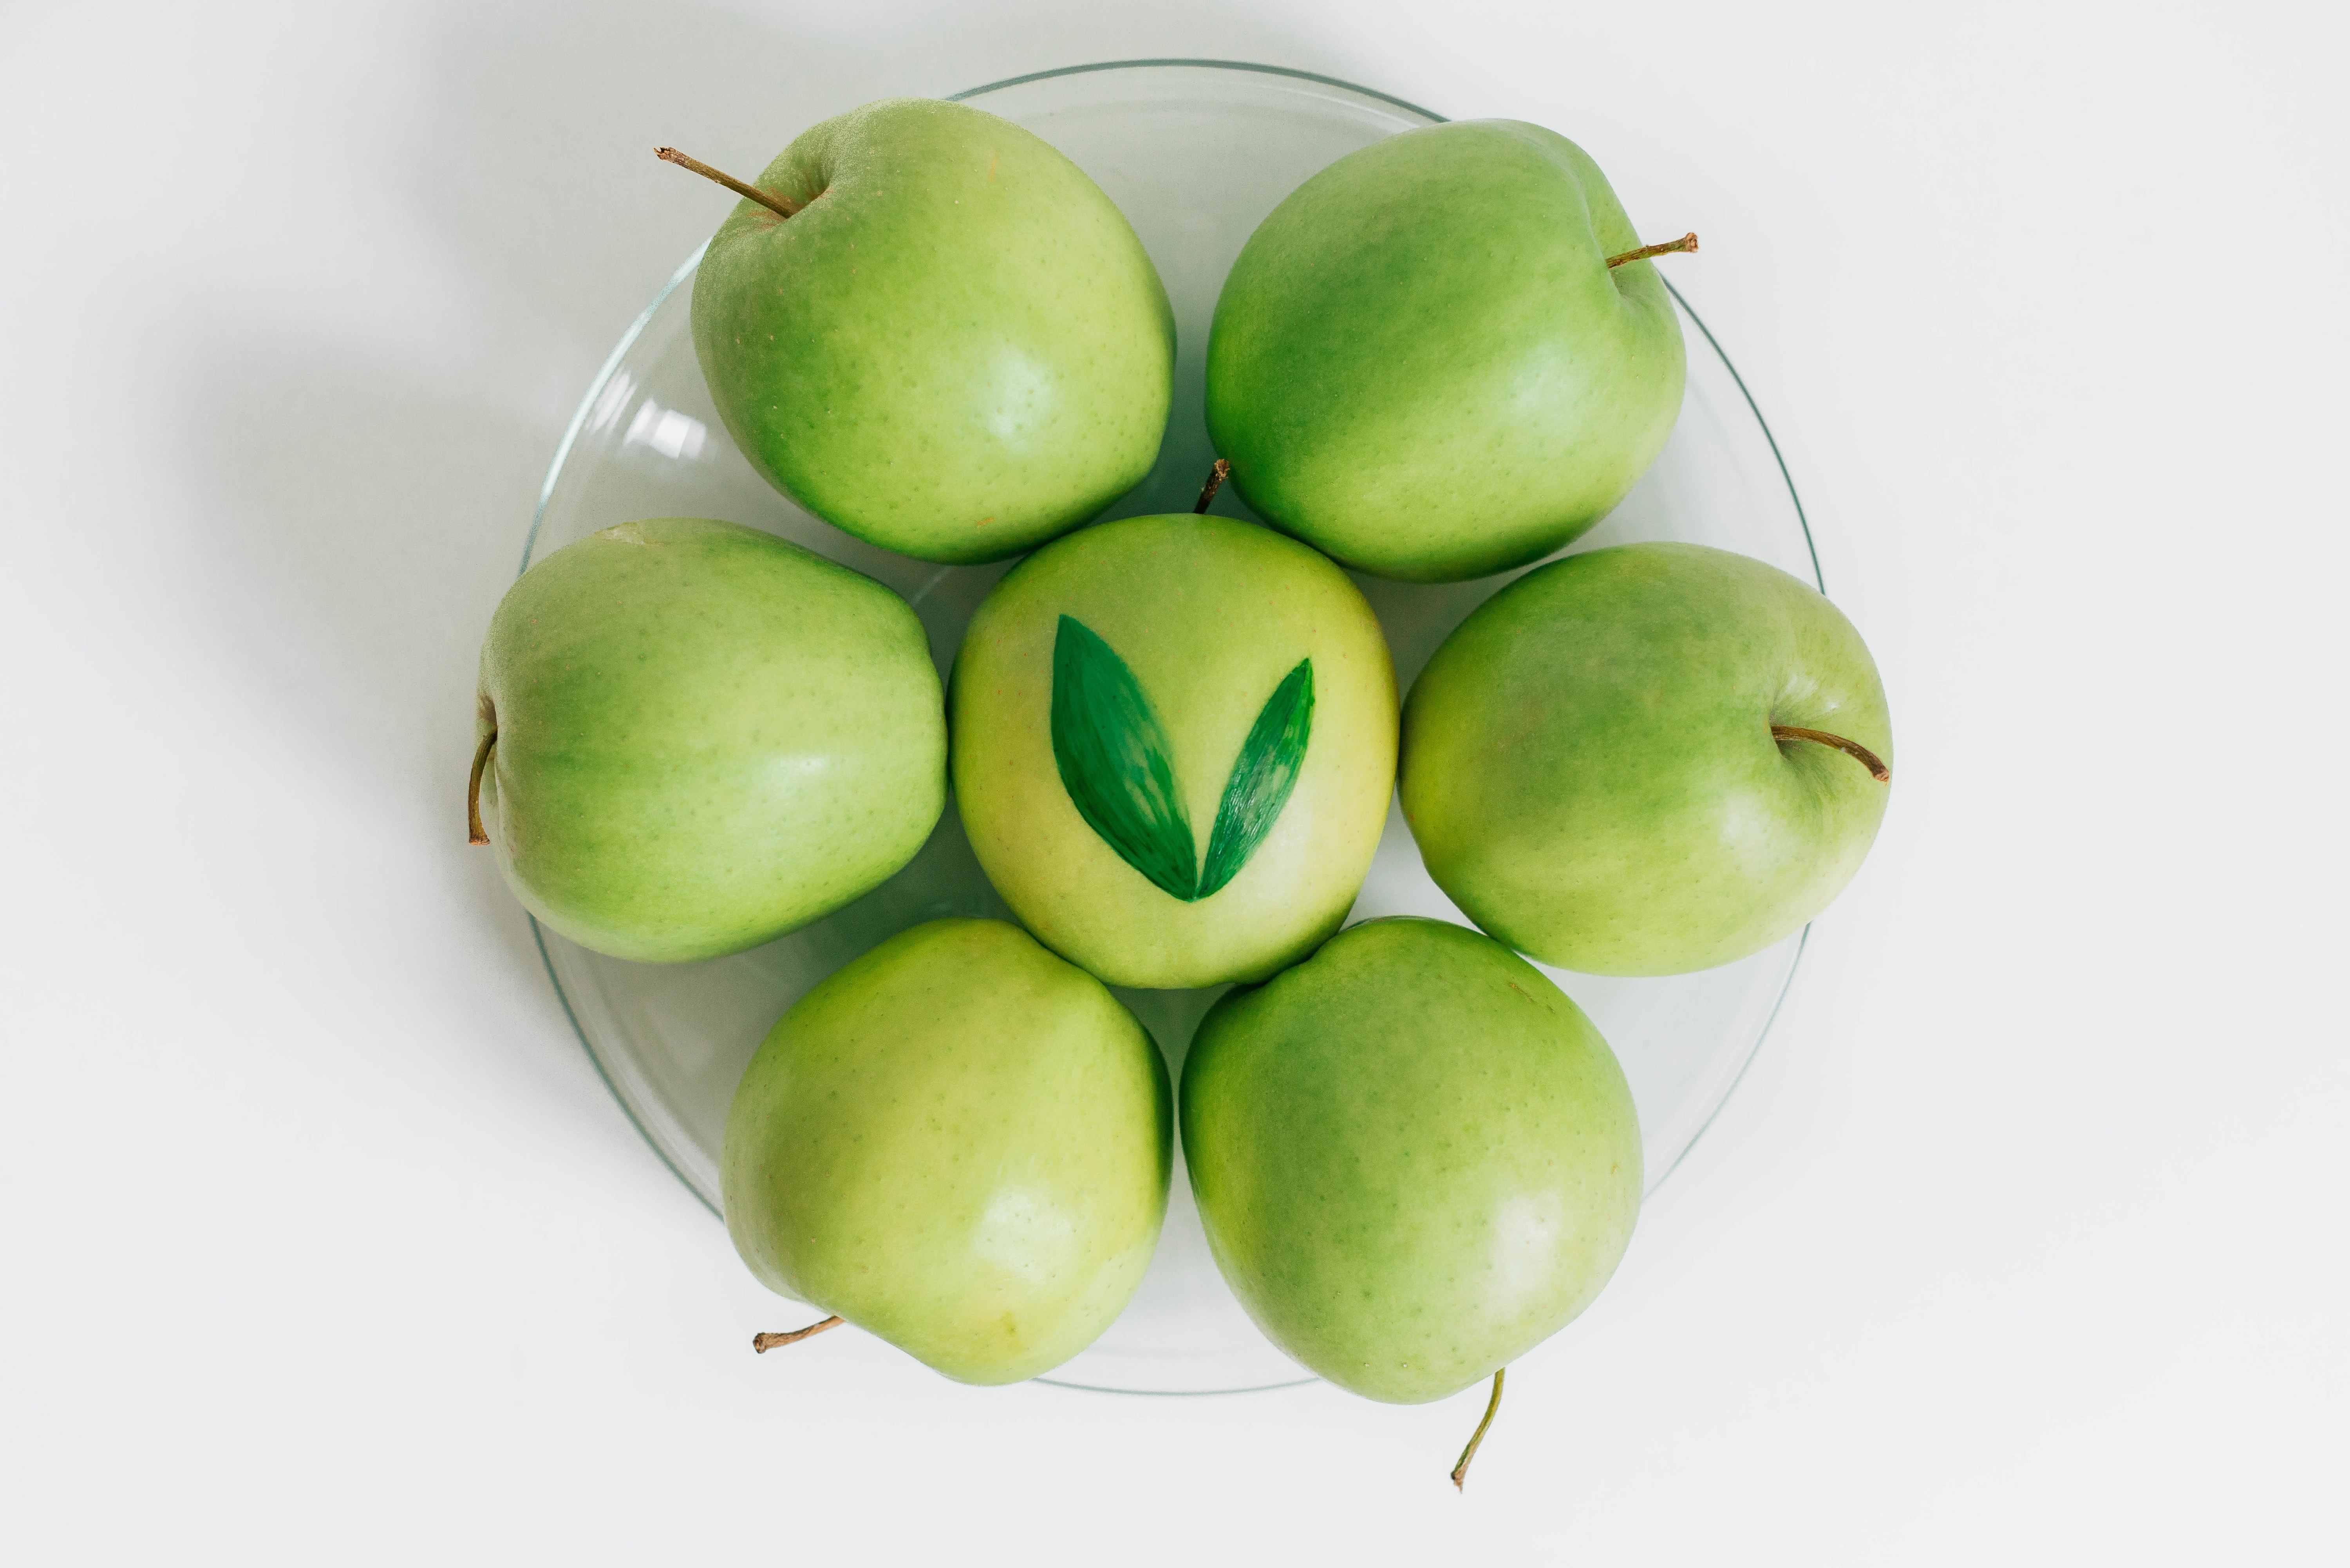 seven green apples served on bowl